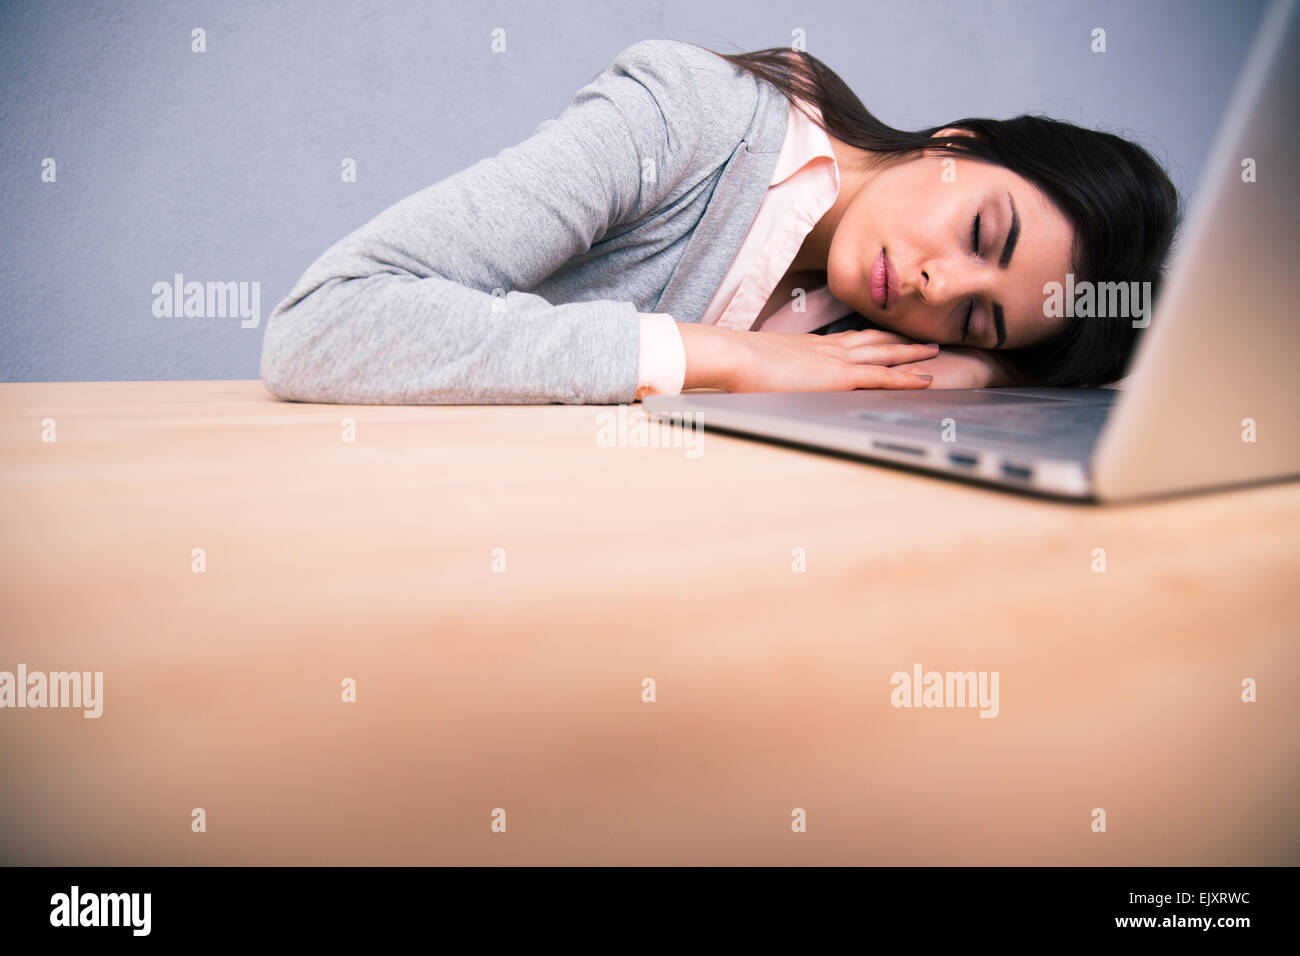 Young pretty woman sleeping on the table with laptop - Stock Image